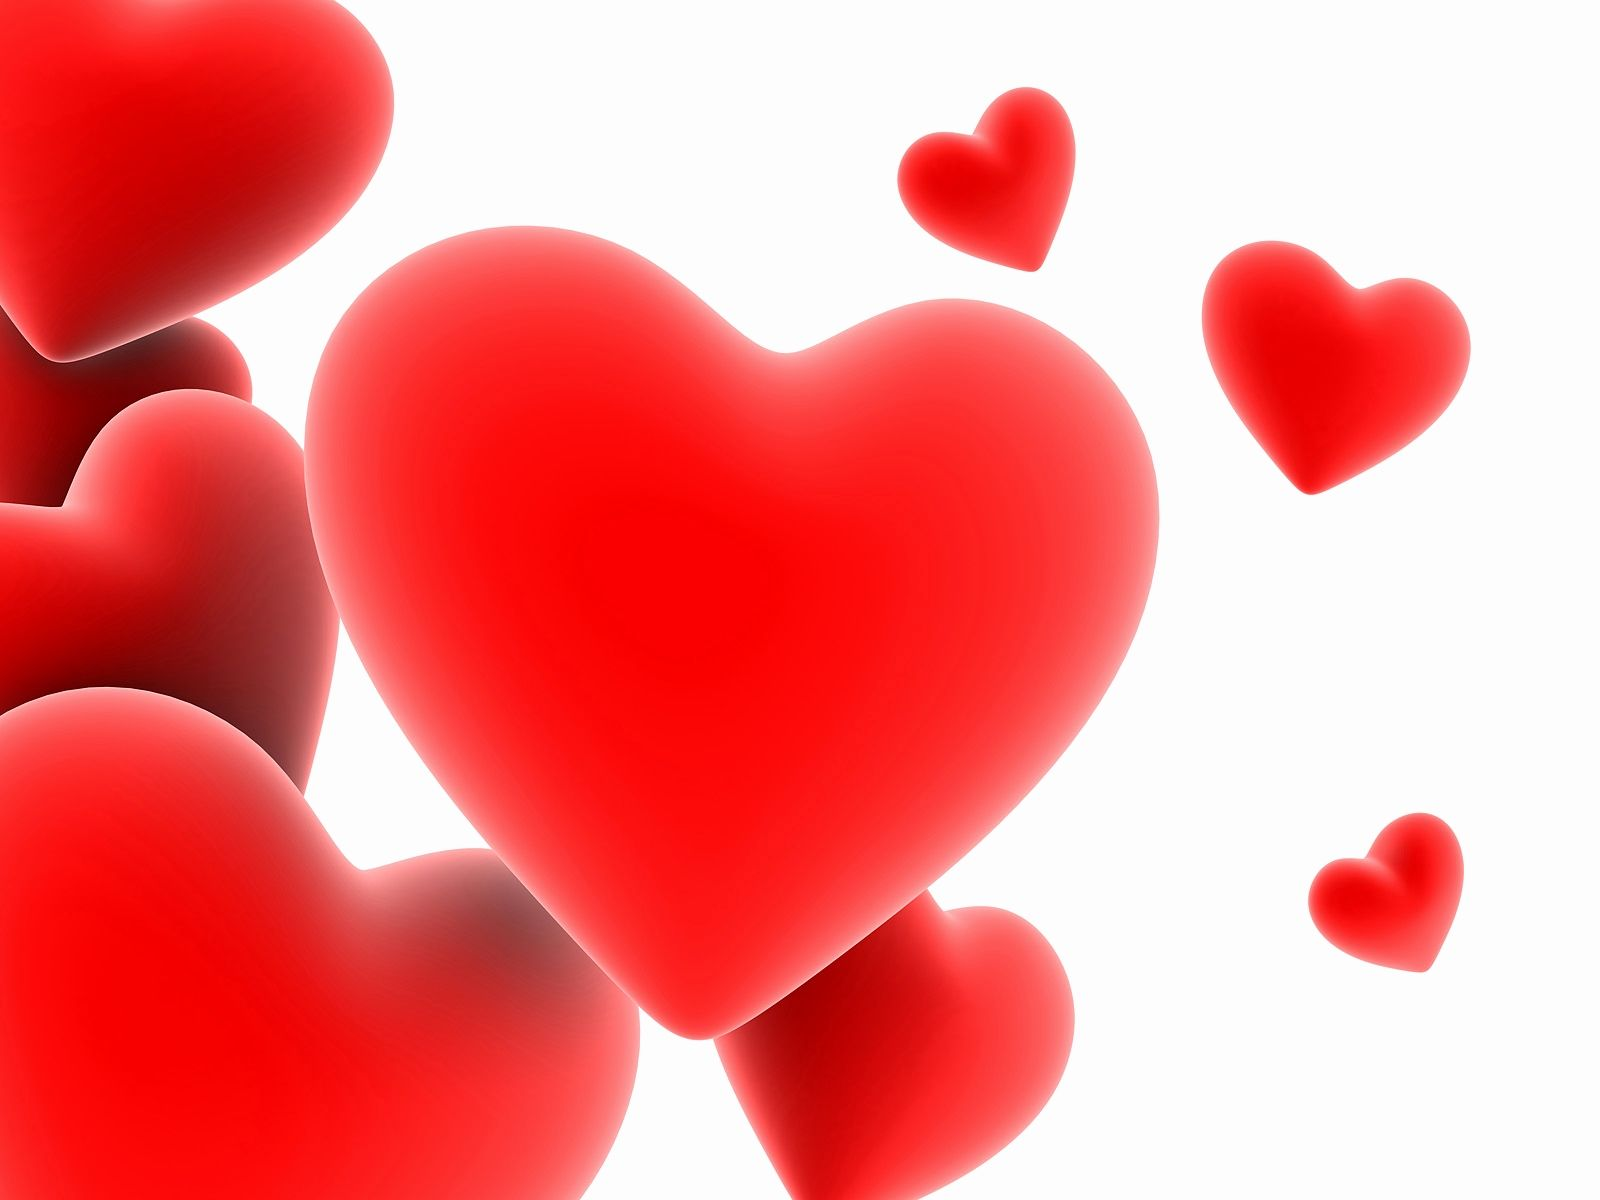 Red Heart Wallpapers Top Free Red Heart Backgrounds Wallpaperaccess